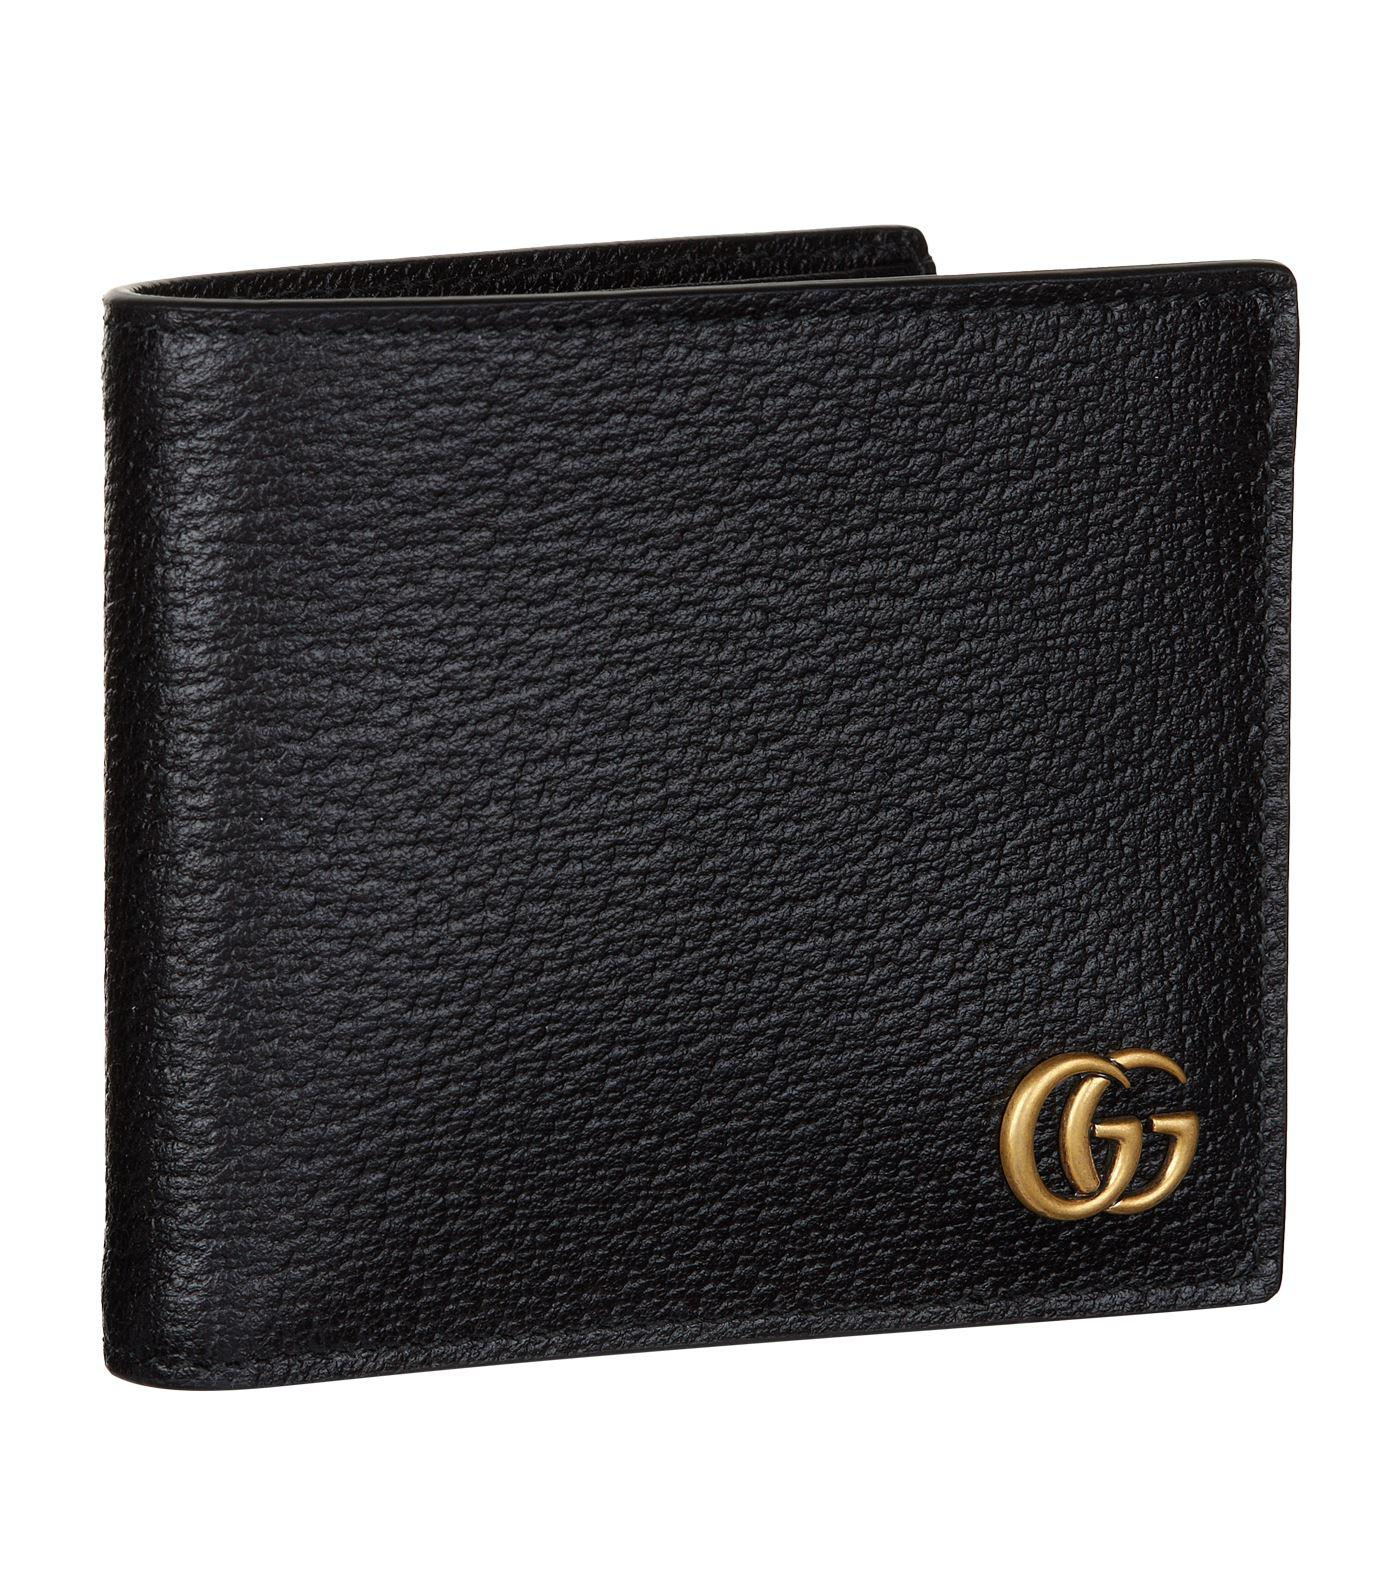 e3ea4670adb6 Lyst - Gucci Gg Supreme Web Bifold Wallet in Black for Men